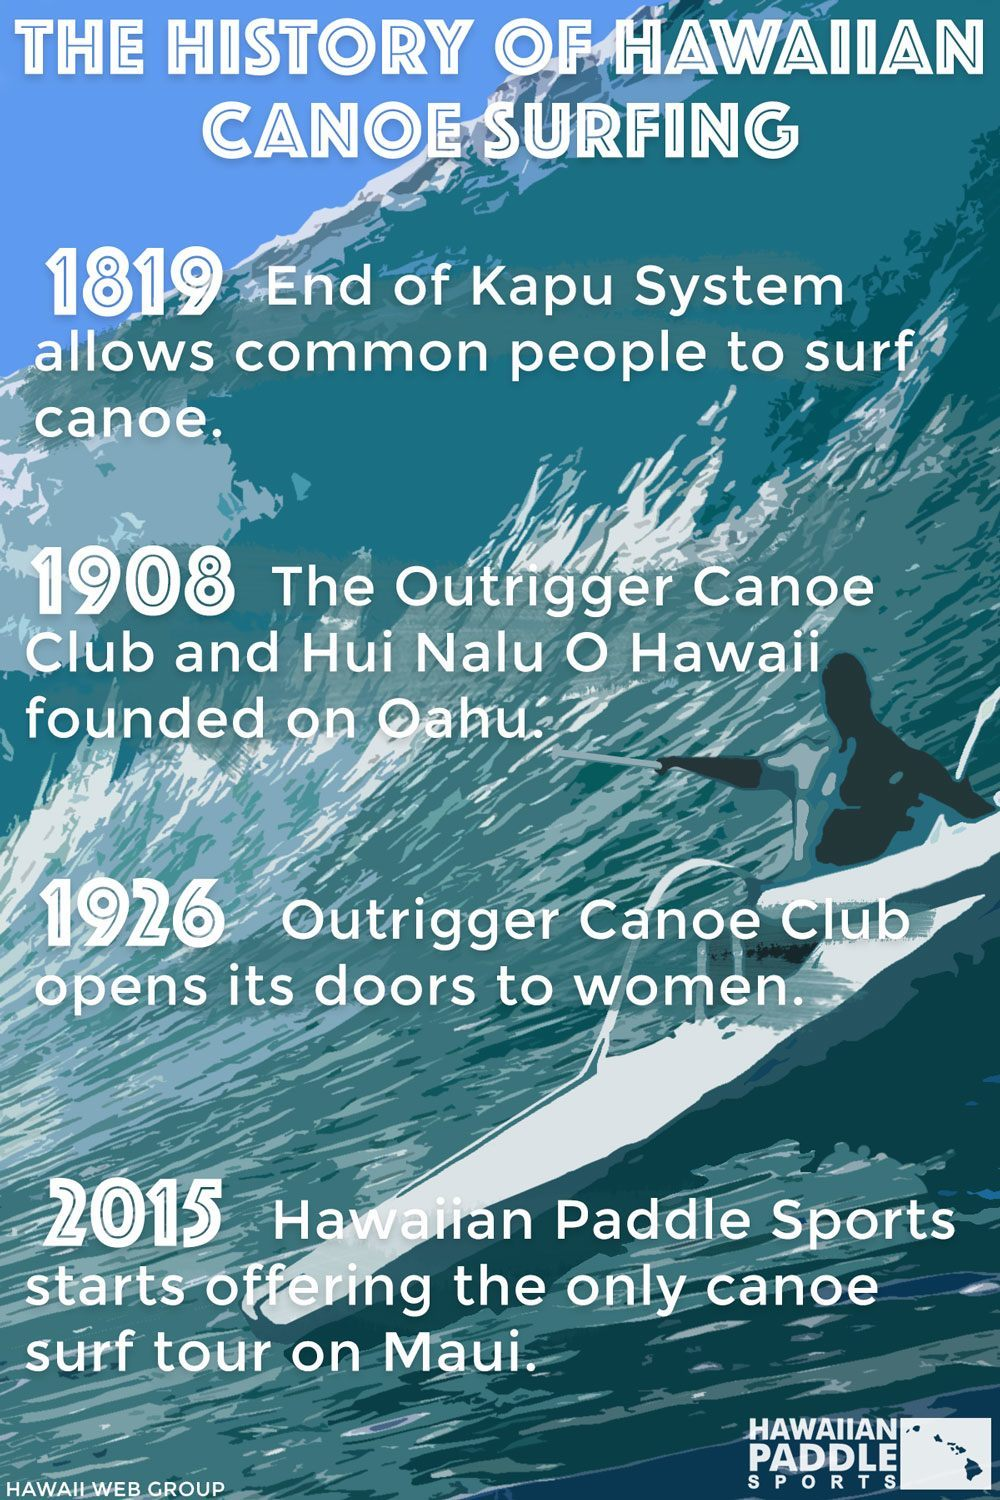 history of hawaiian canoe surfing